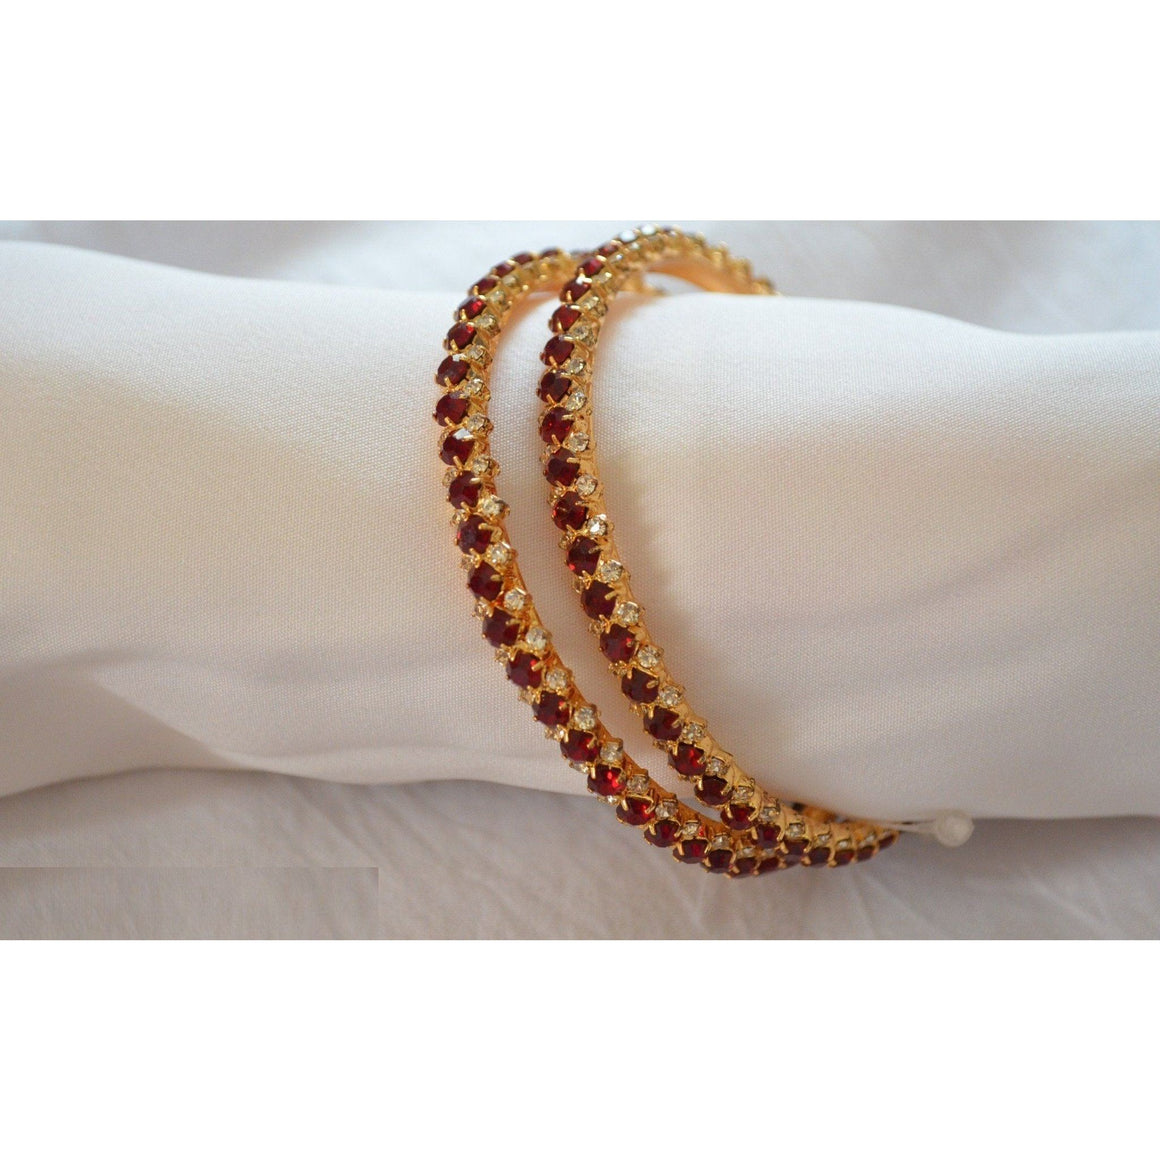 Set of 2 bangles with dark red cubic zirconia crystals with white crystals at the borders